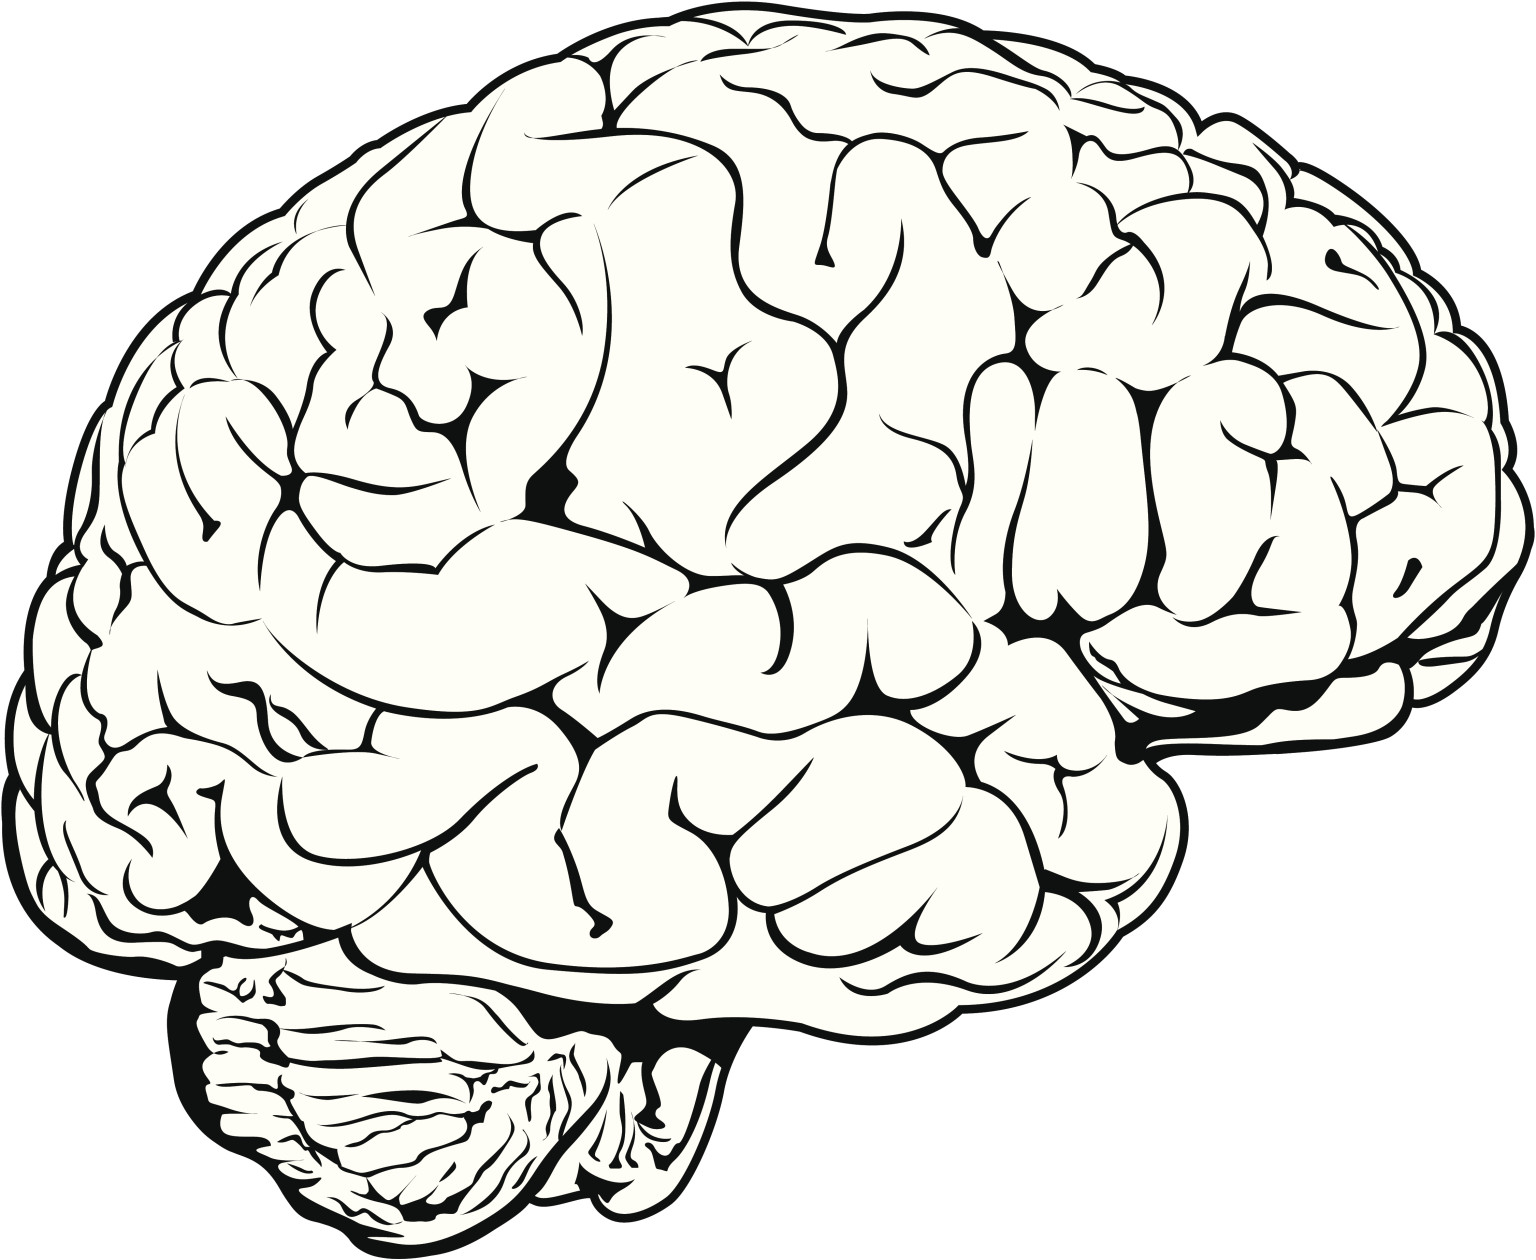 Brain front view clipart picture transparent stock Free Brain Drawing Cliparts, Download Free Clip Art, Free Clip Art ... picture transparent stock